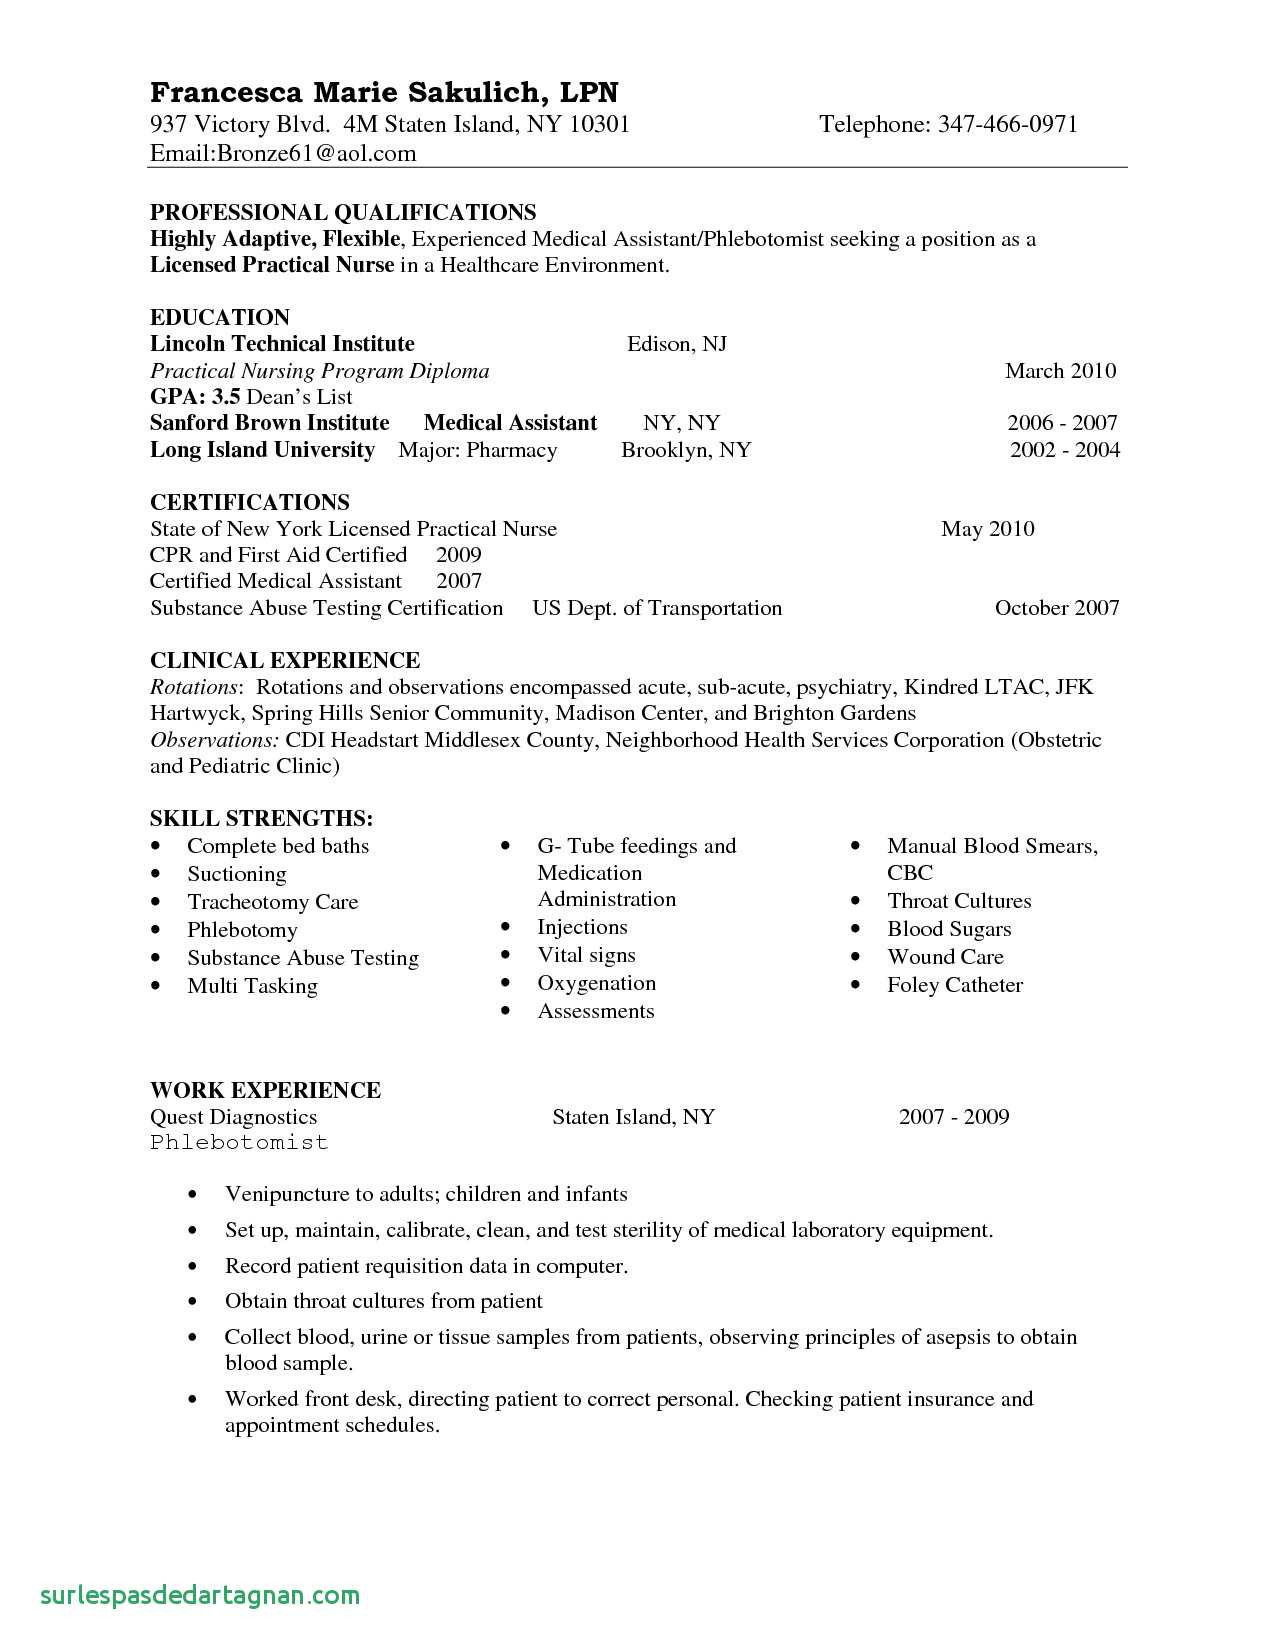 new grad nurse resume template Collection-New Grad Nursing Resume Template Awesome Sample Resume For New Graduate Best New Graduate Nurse Resume 19-f